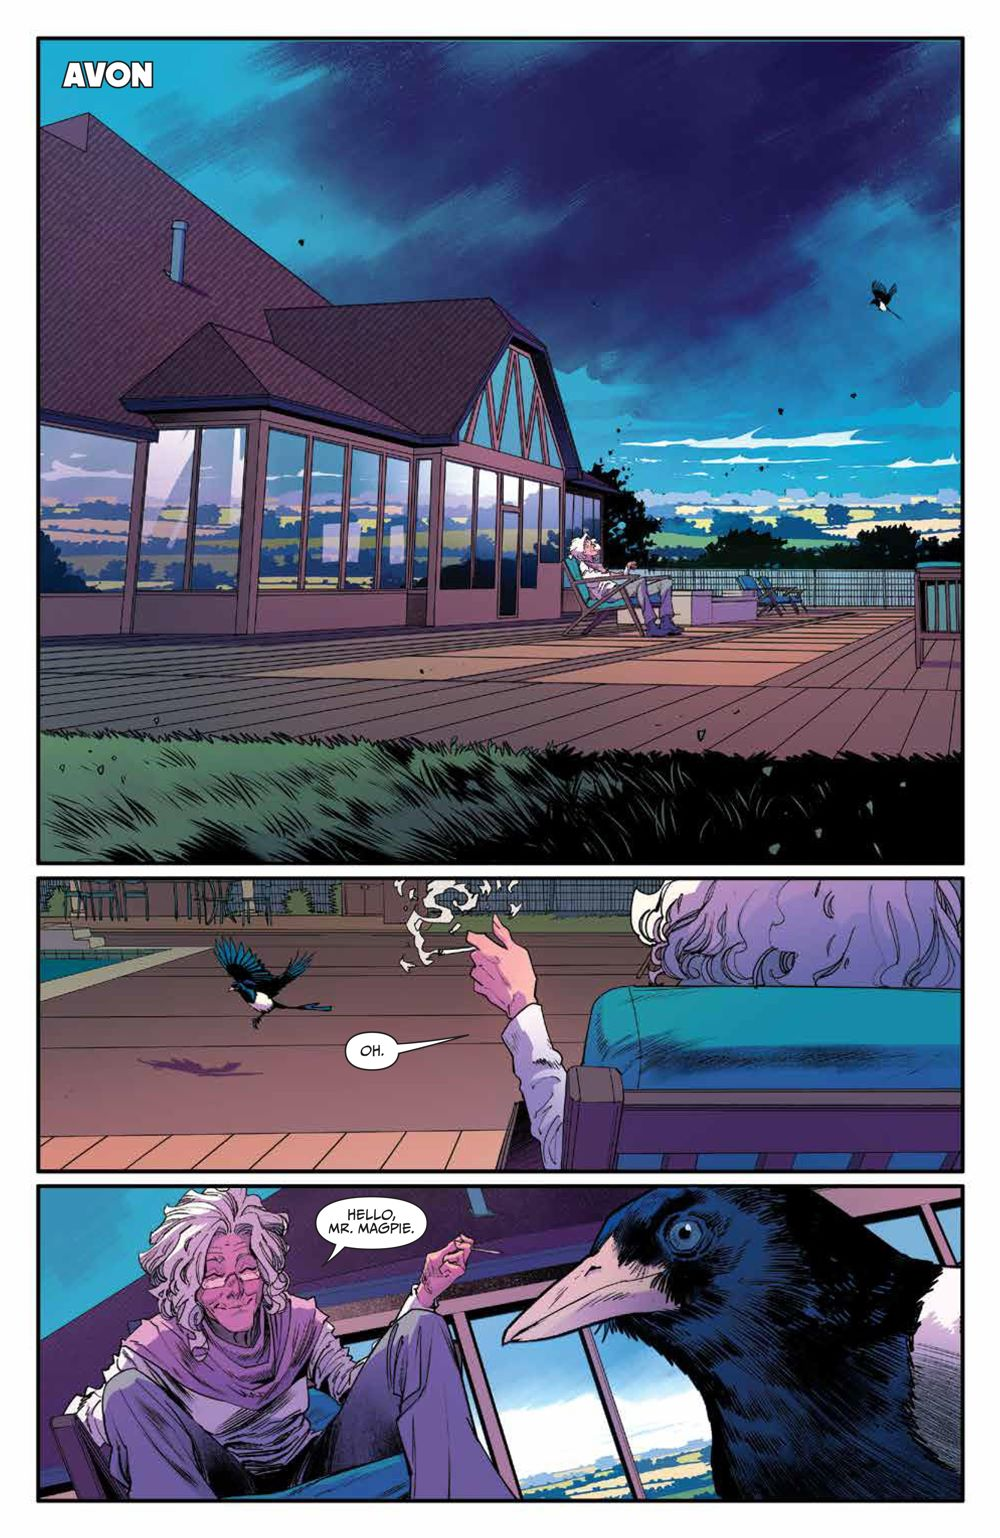 OnceFuture_v3_SC_PRESS_7 ComicList Previews: ONCE AND FUTURE VOLUME 3 THE PARLIAMENT OF MAGPIES TP